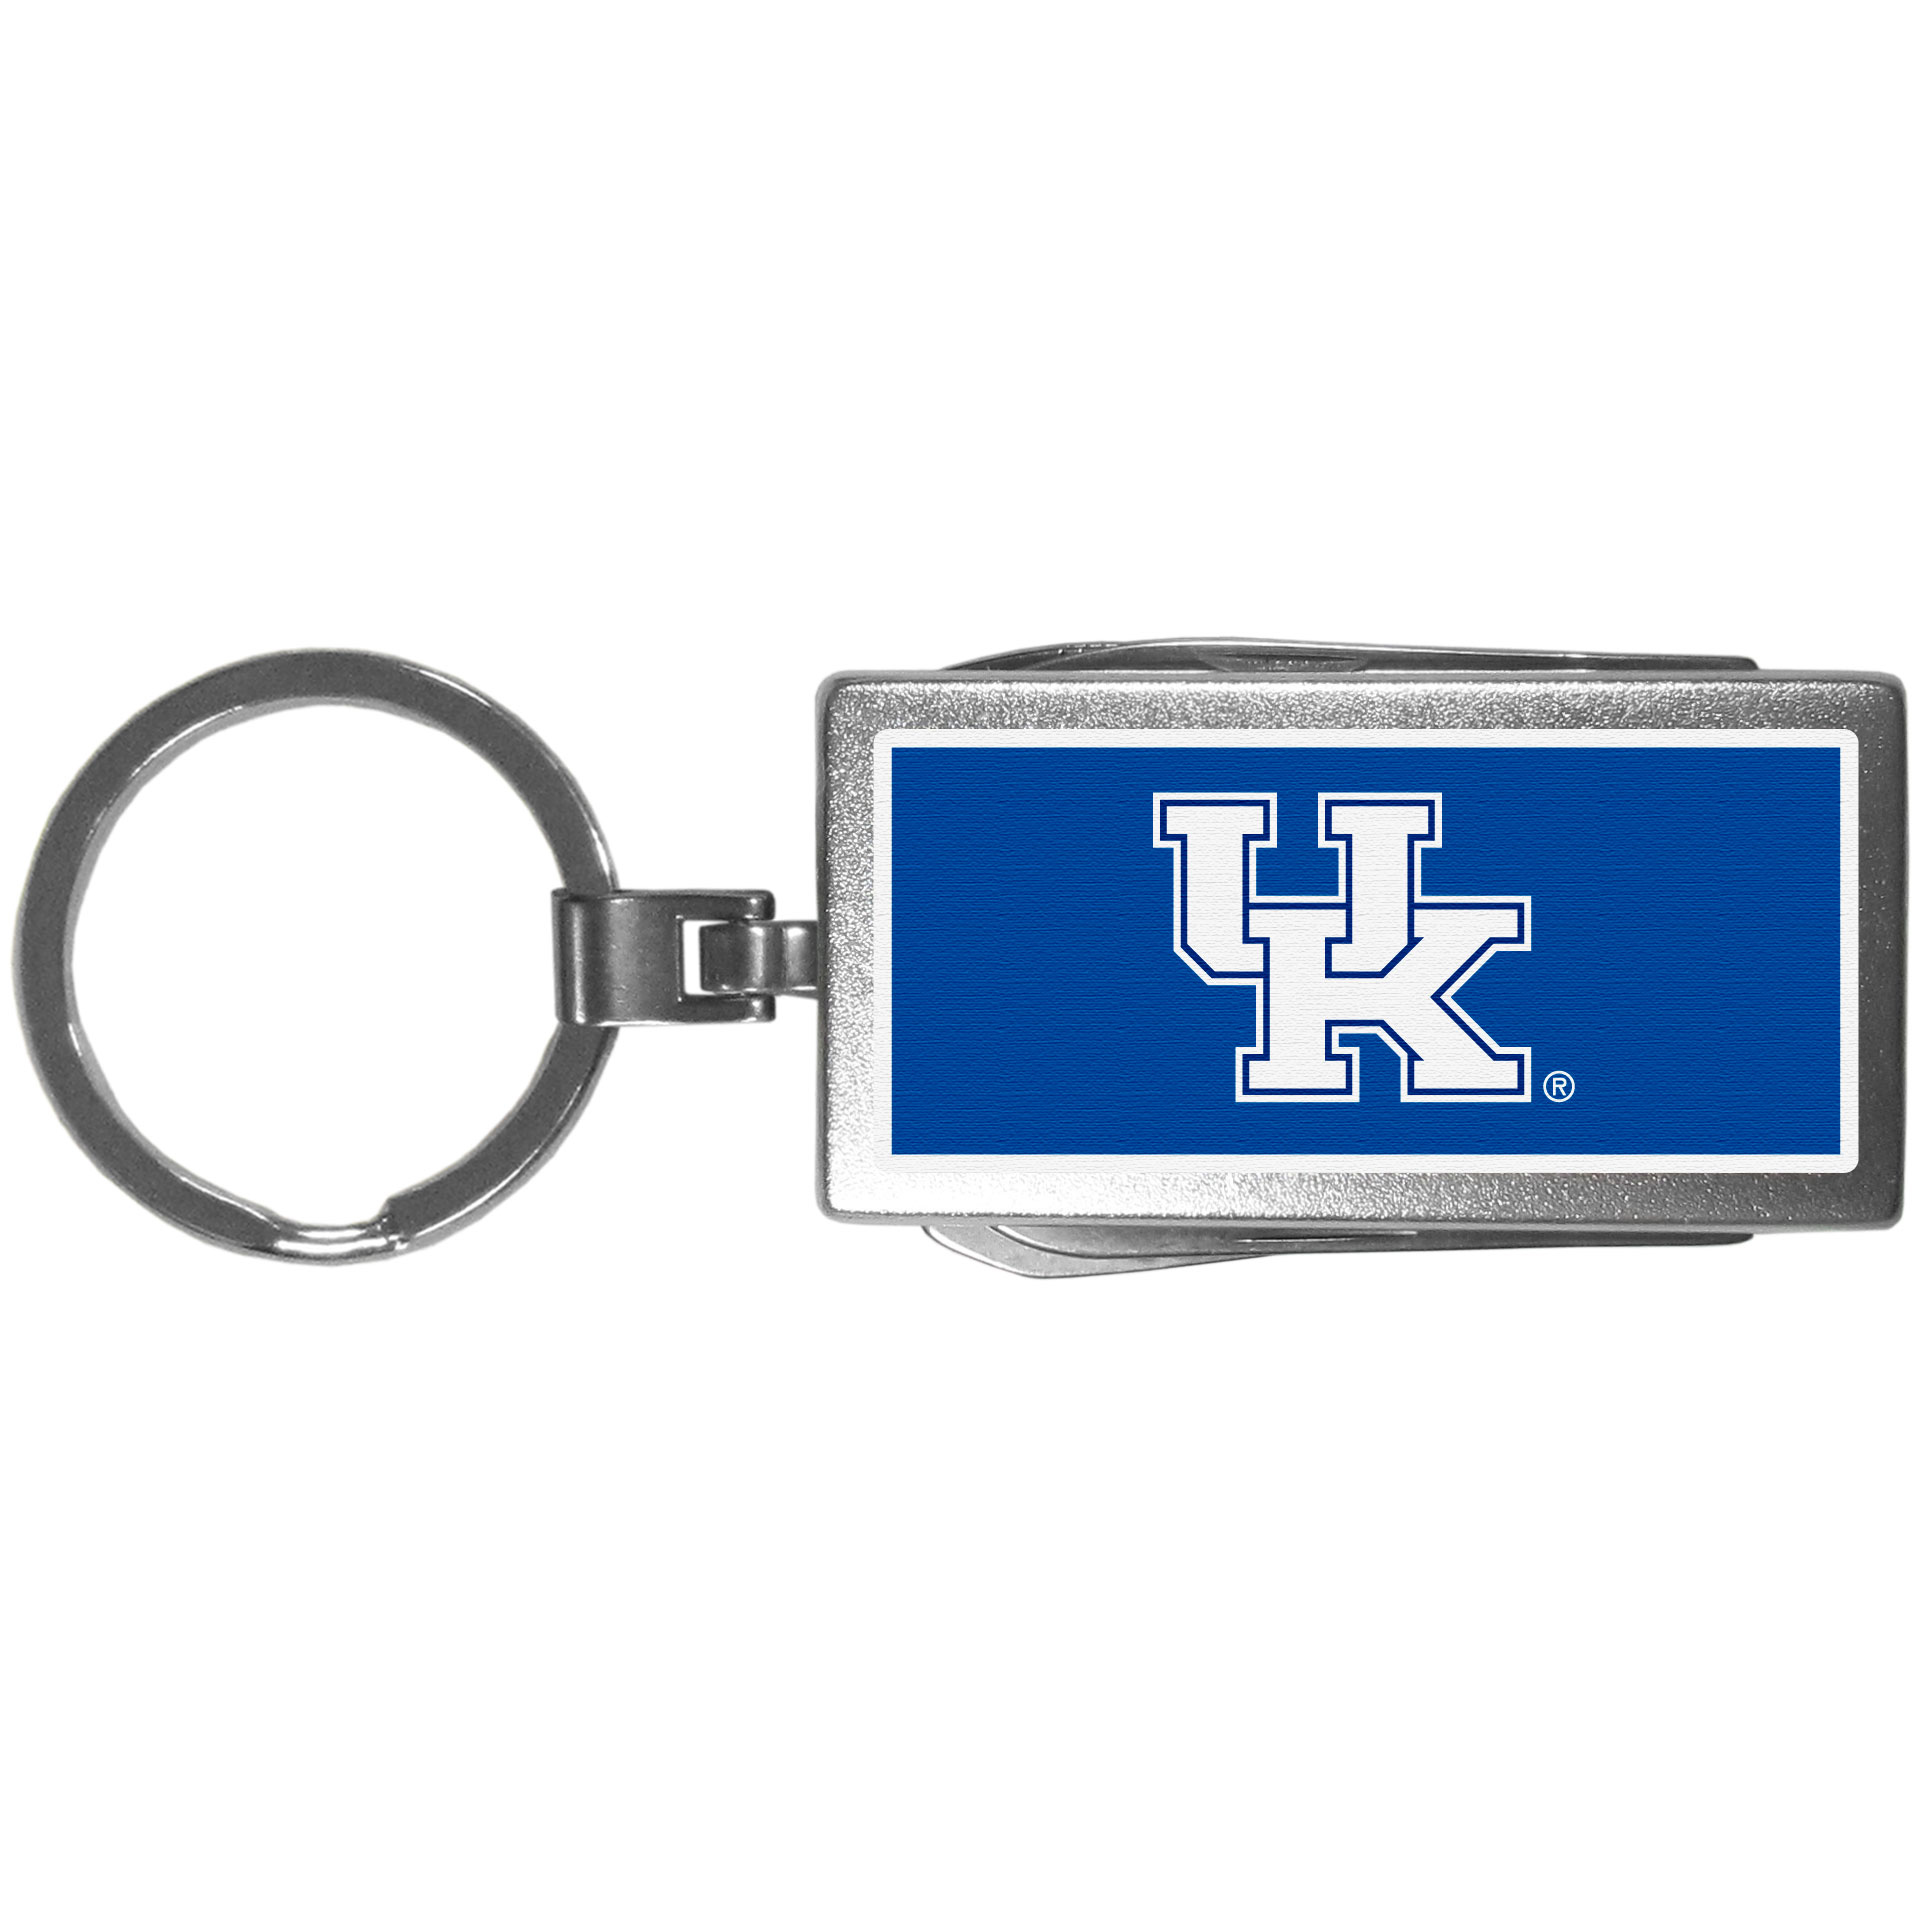 Kentucky Wildcats Multi-tool Key Chain, Logo - Be the hero at the tailgate, camping, or on a Friday night with your Kentucky Wildcats Multi-Tool Keychain which comes complete with bottle opener, scissors, knife, nail file and screw driver. Be it opening a package or a beverage Siskiyou's Multi-Tool Keychain goes wherever your keys do. The keychain hangs at 4 inches long when closed.